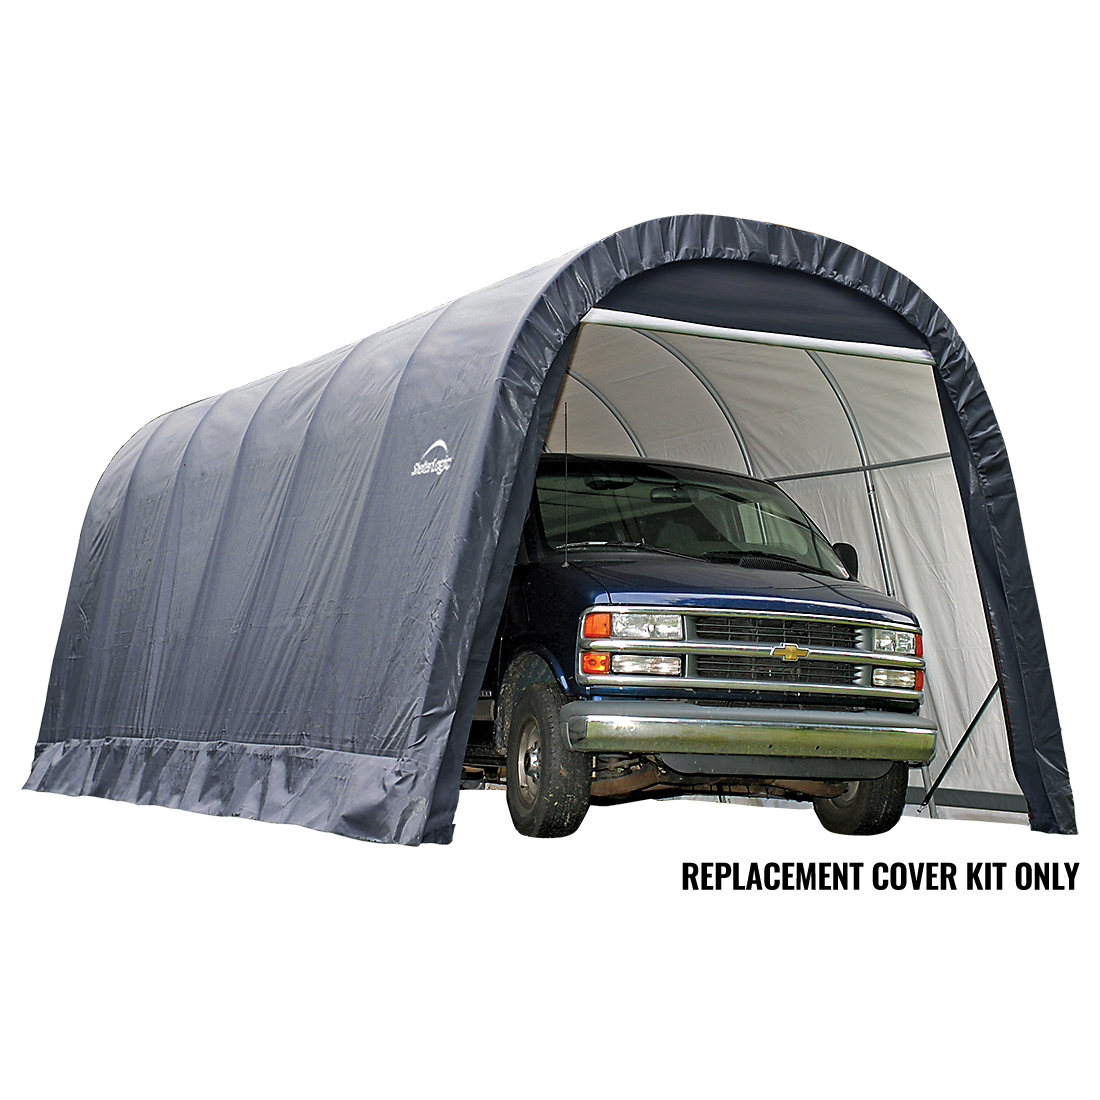 Replacement Cover Kit for the Round Garage-in-a-Box® 15 x 40 x 16 ft.